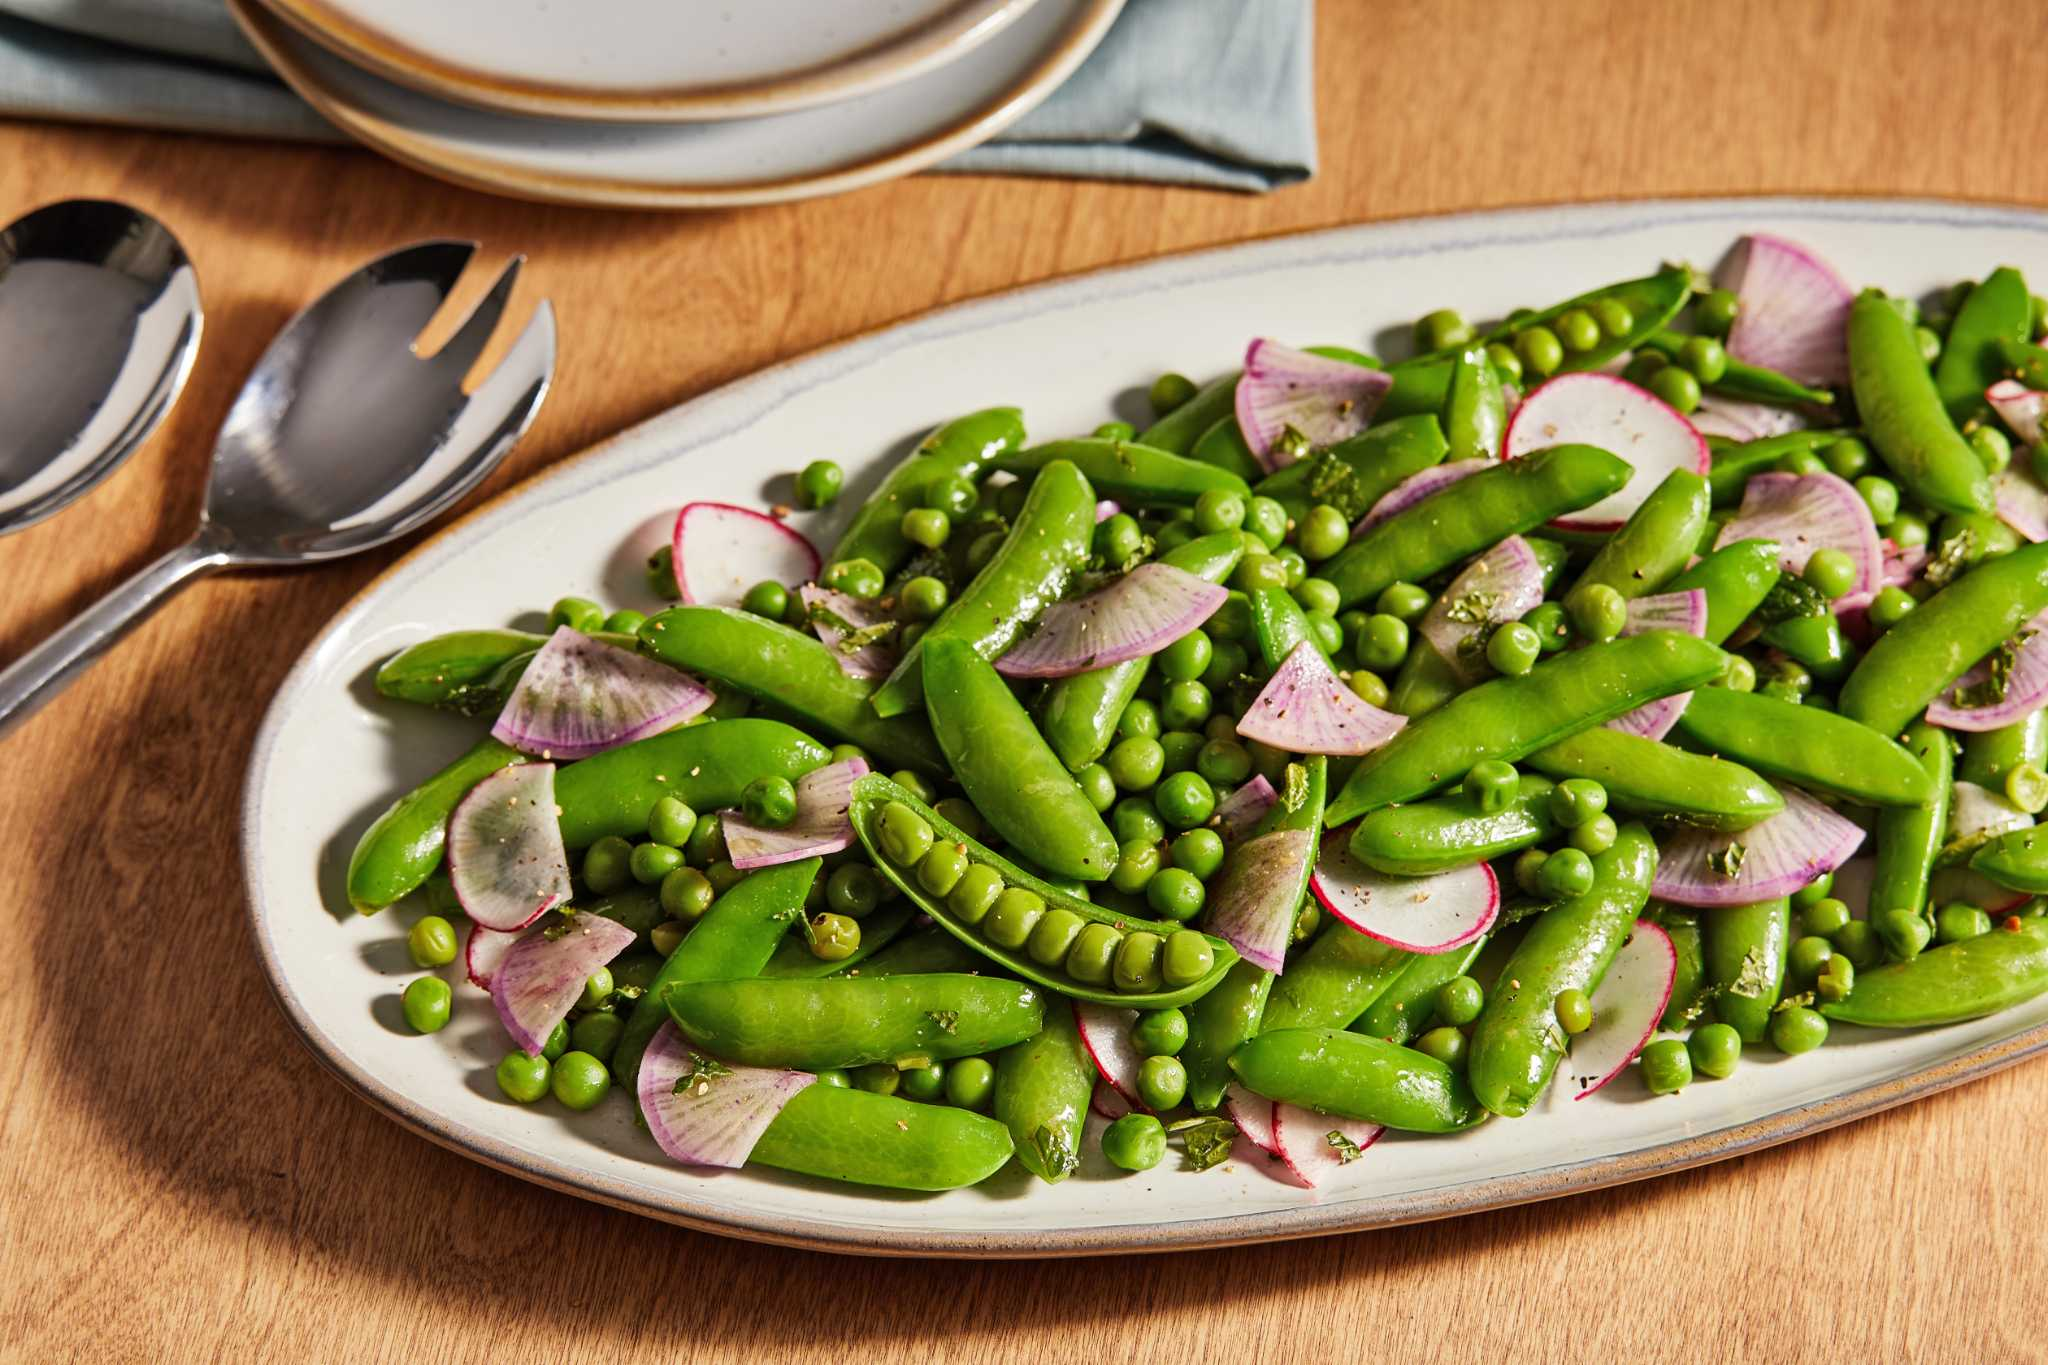 Loaded with two types of peas, radishes and mint, this lemony salad sings spring